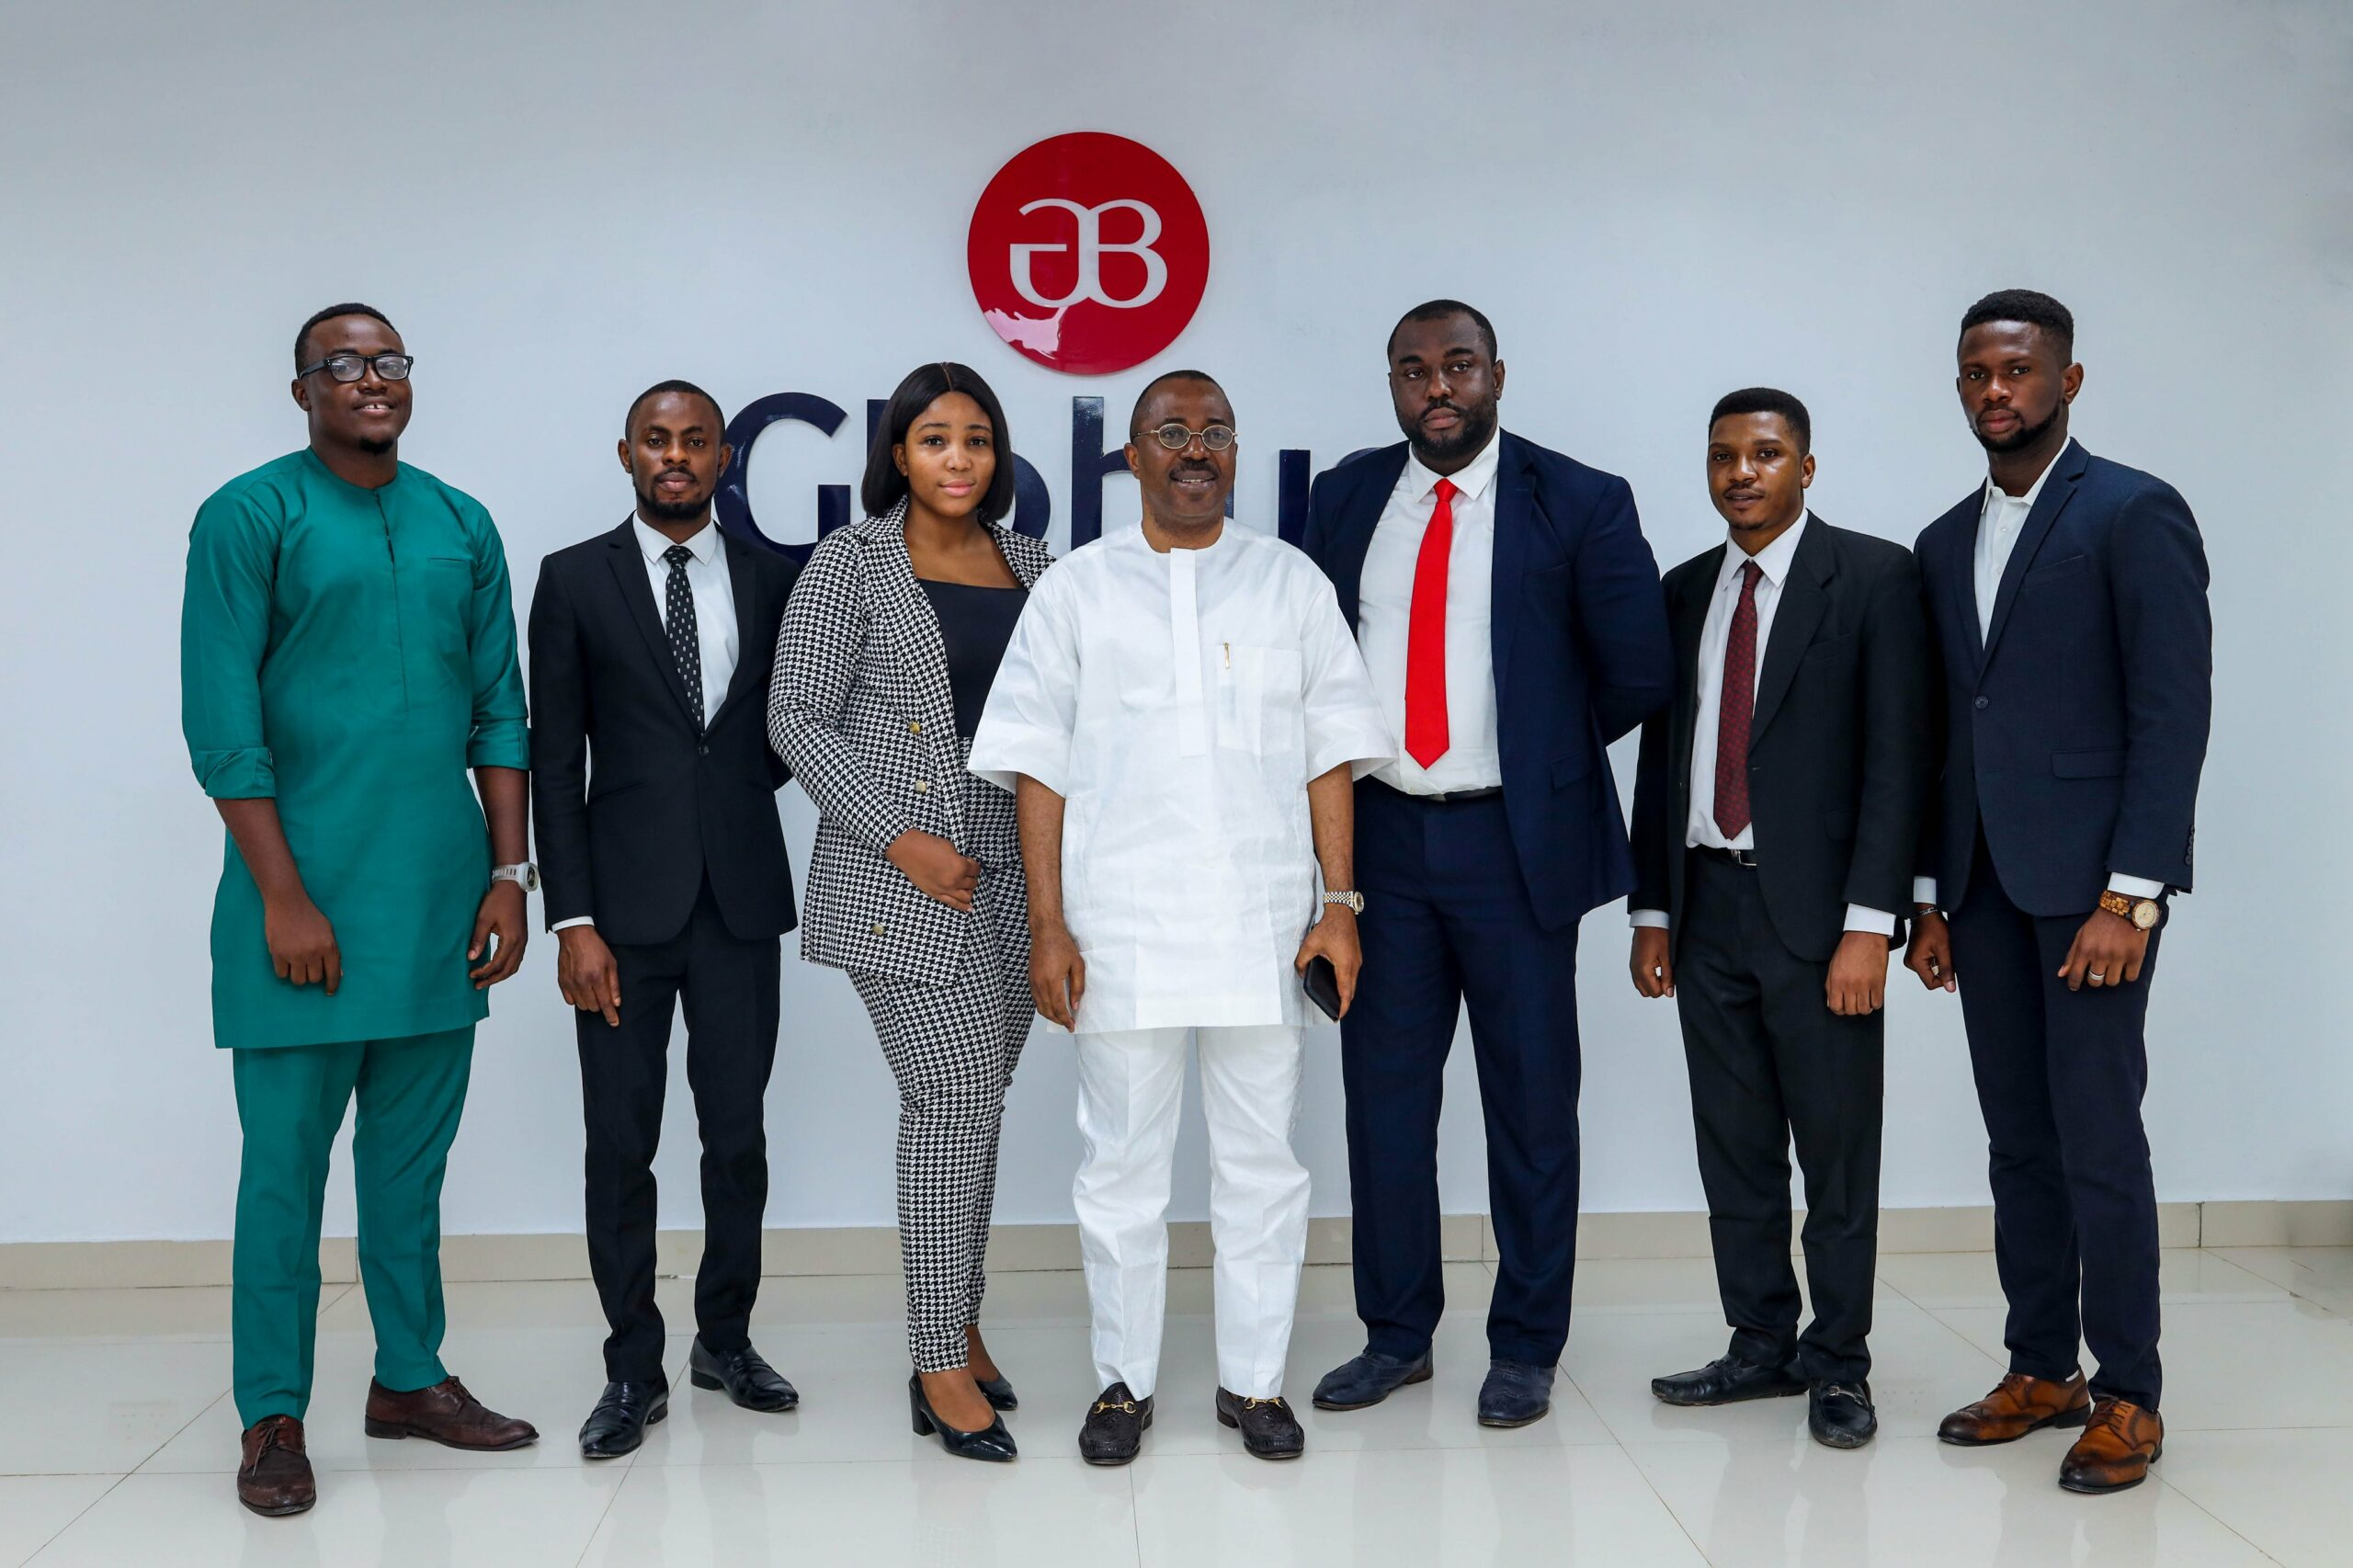 Globus Bank Brandspurng expands operations, Opens 3 branches (Photos)1